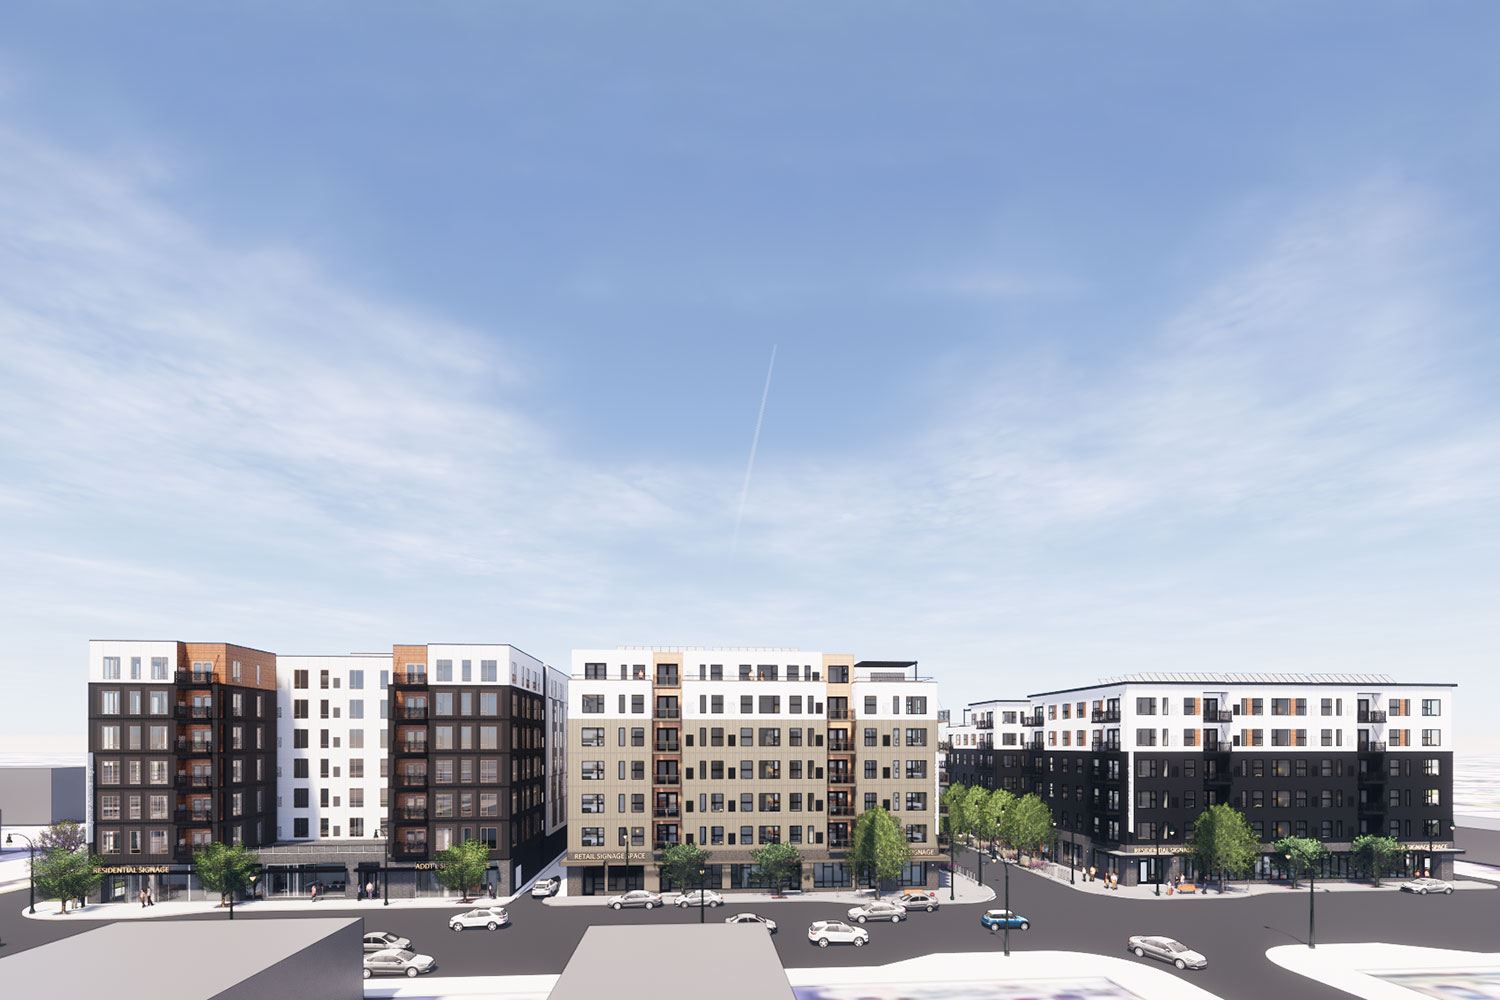 City approvals jumpstart second and third phases of Lupe Development Partners' mixed-income project at Lyn-Lake